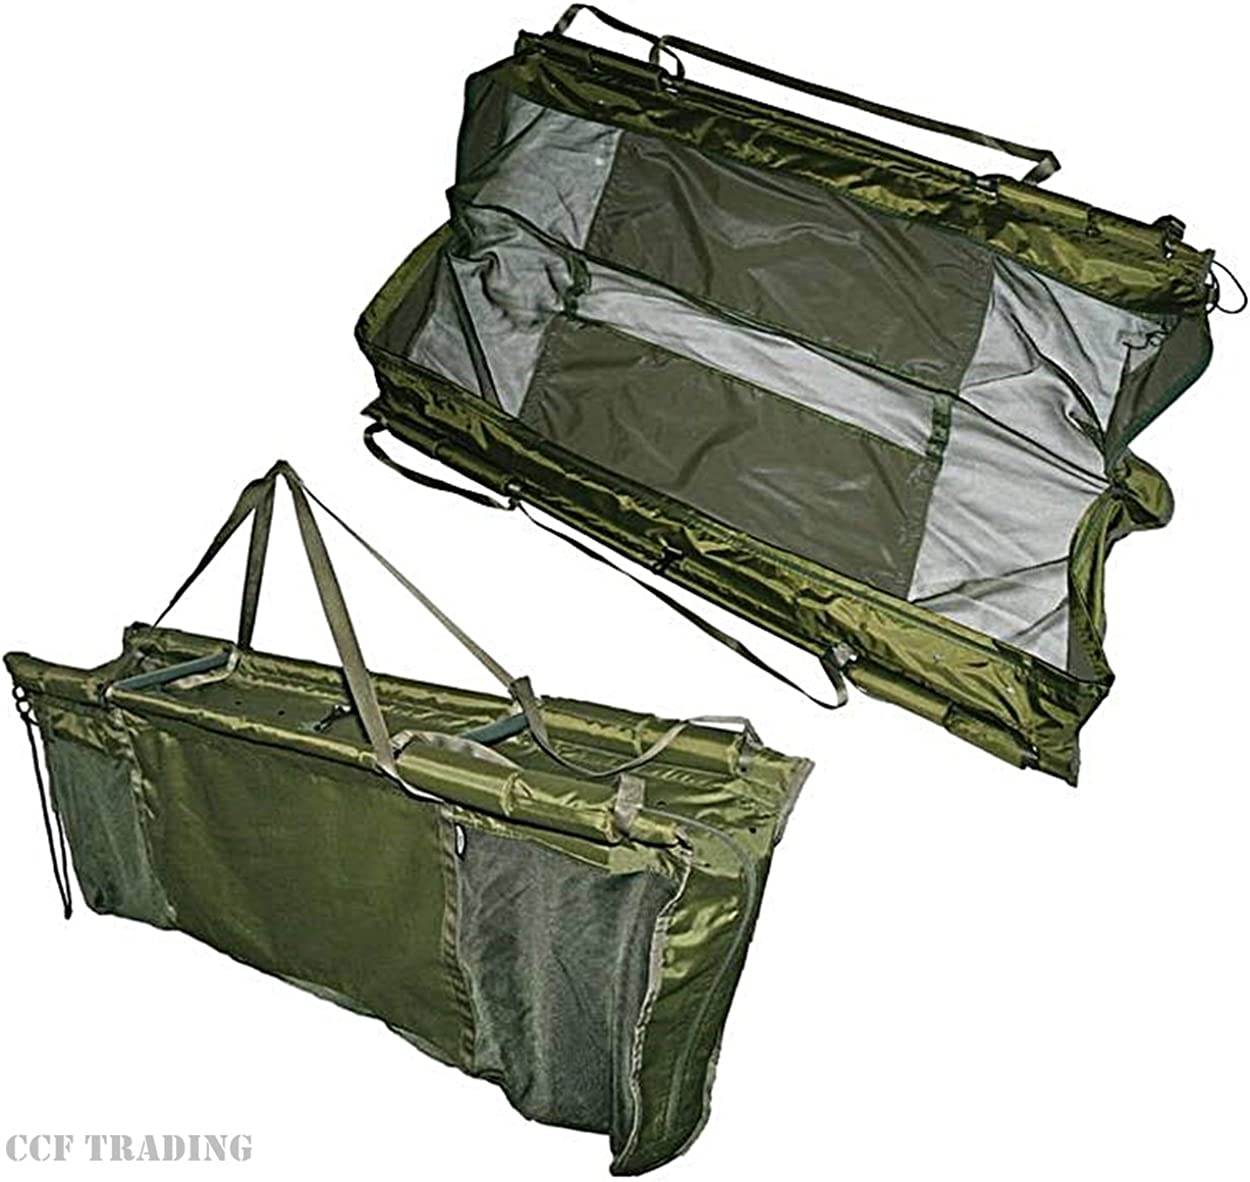 NGT CARP FISHING CAPTUR FLOATING SLING AND HOLDING SYSTEM WITH 2M ROPE AND PEG